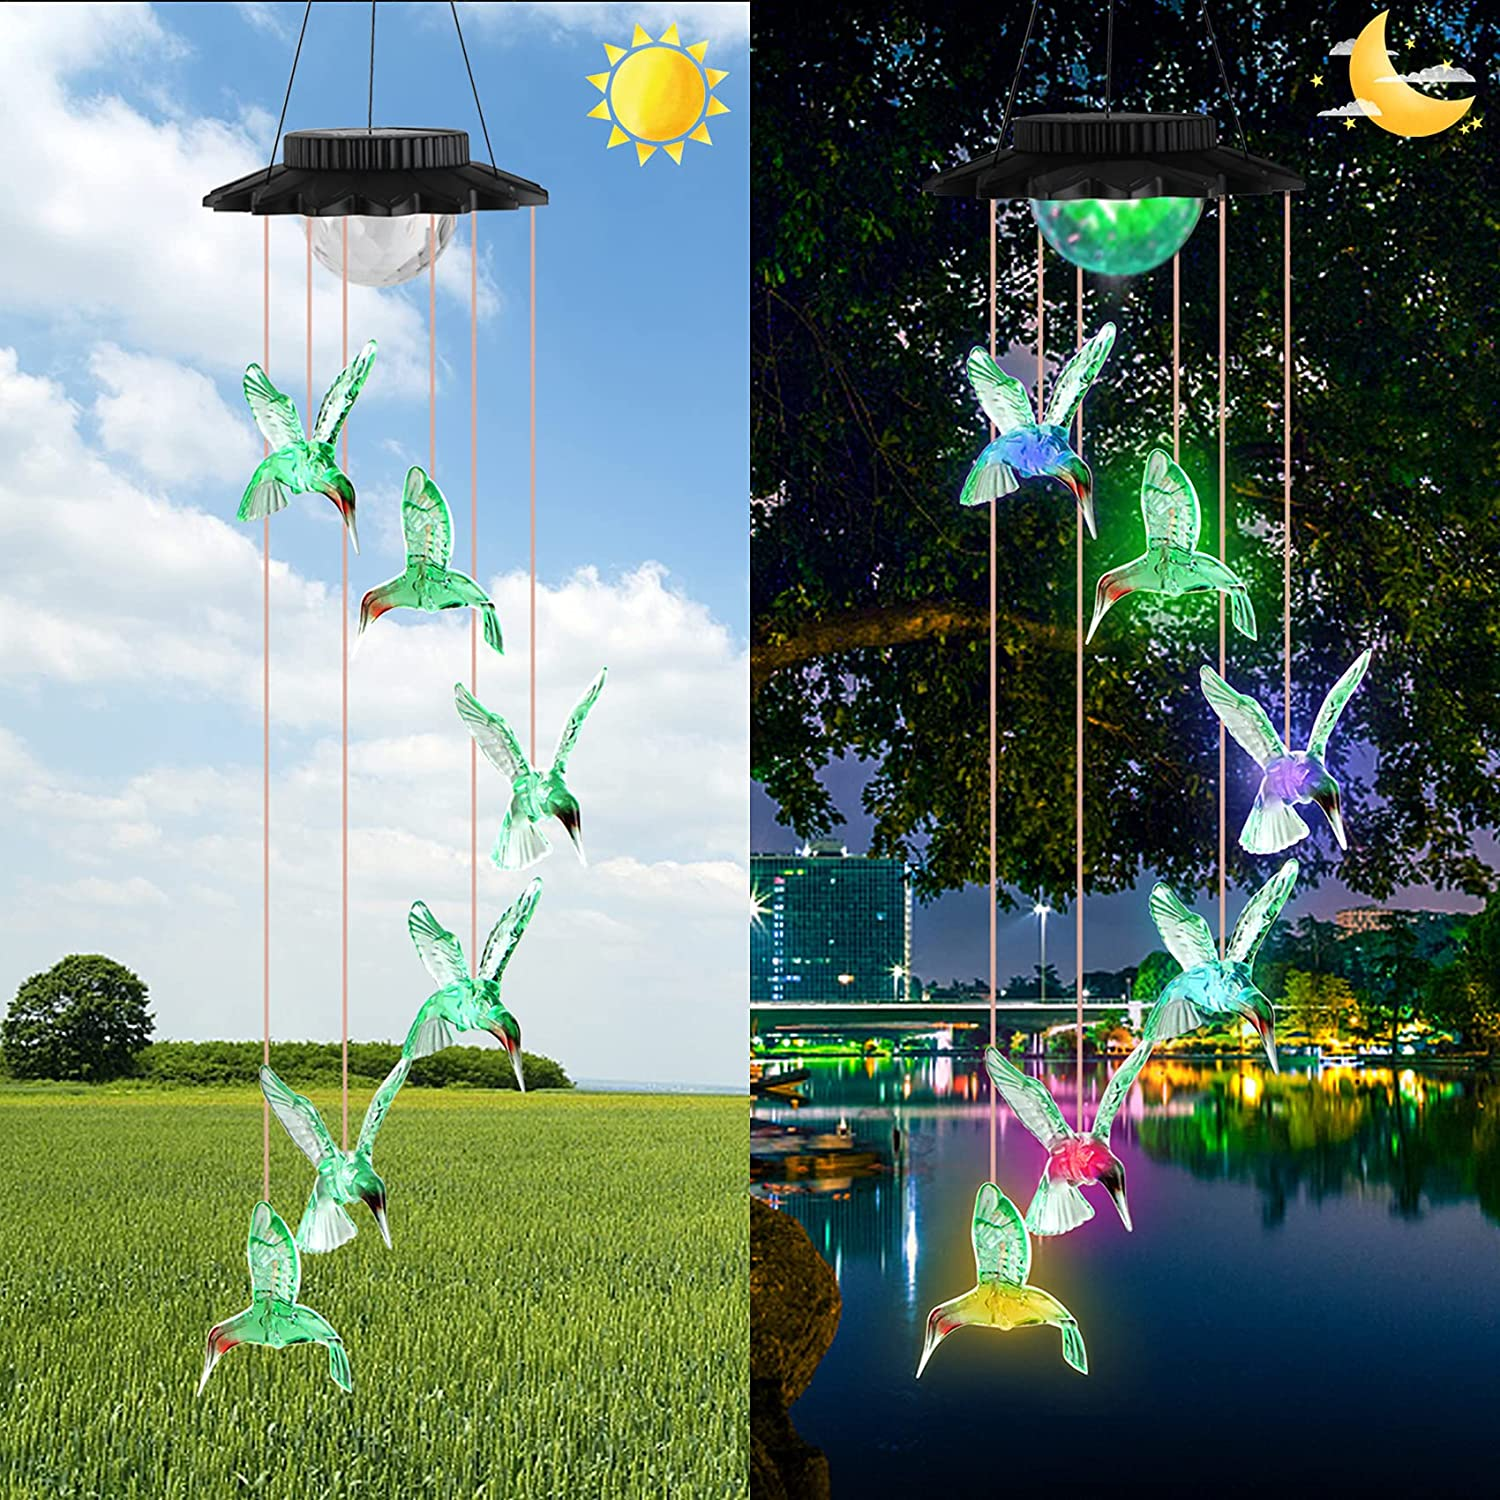 Jornarshar Hummingbird Solar Wind Chime, Color Changing Solar Wind Chimes, Gifts for Mother's Day, Waterproof Outdoor Decorative Wind Chime Light for Home Garden Patio Yard